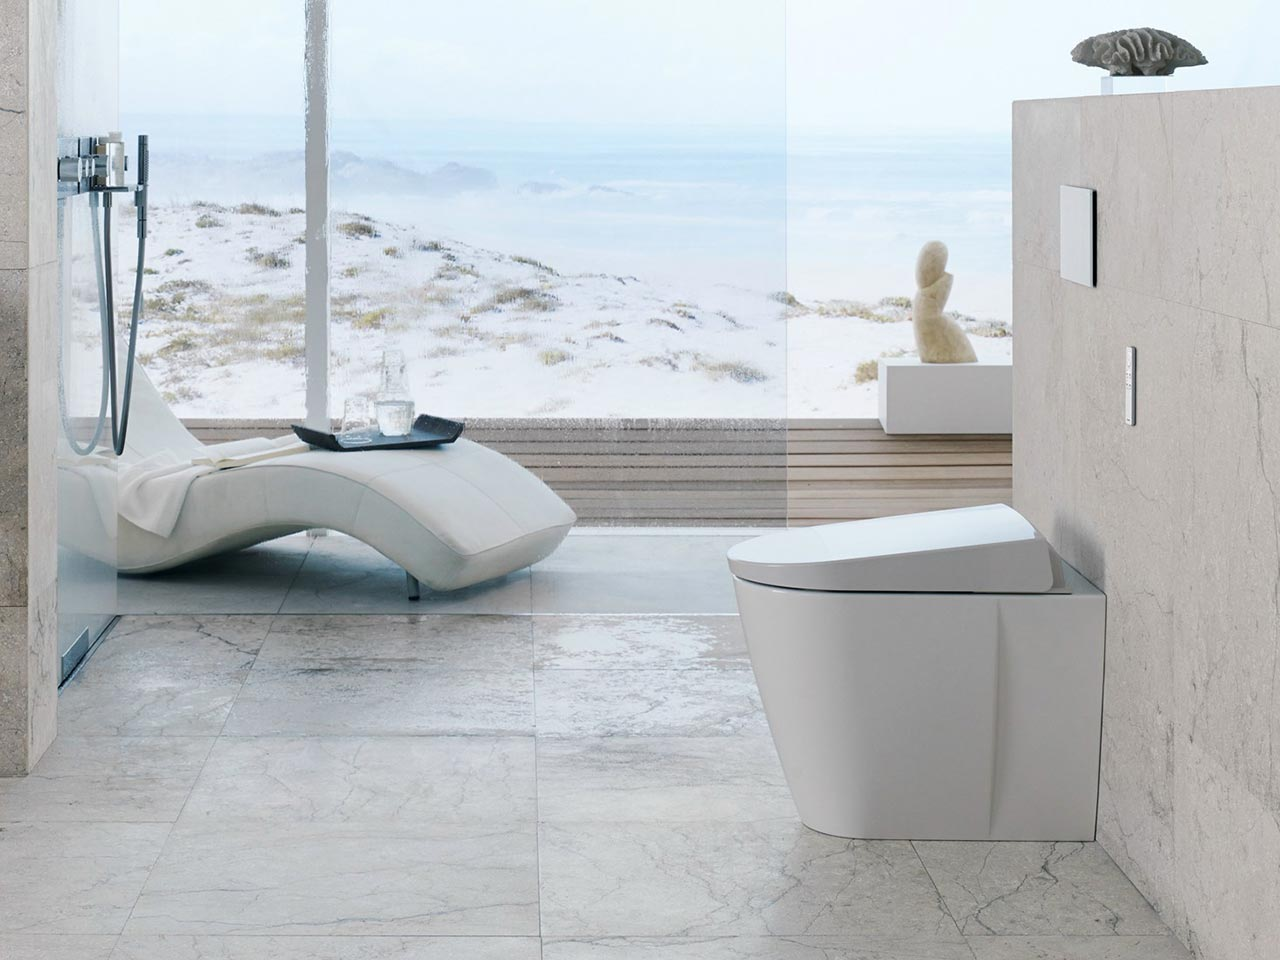 Aquaclean Sela by Geberit, designed by Matteo Thun & Partners